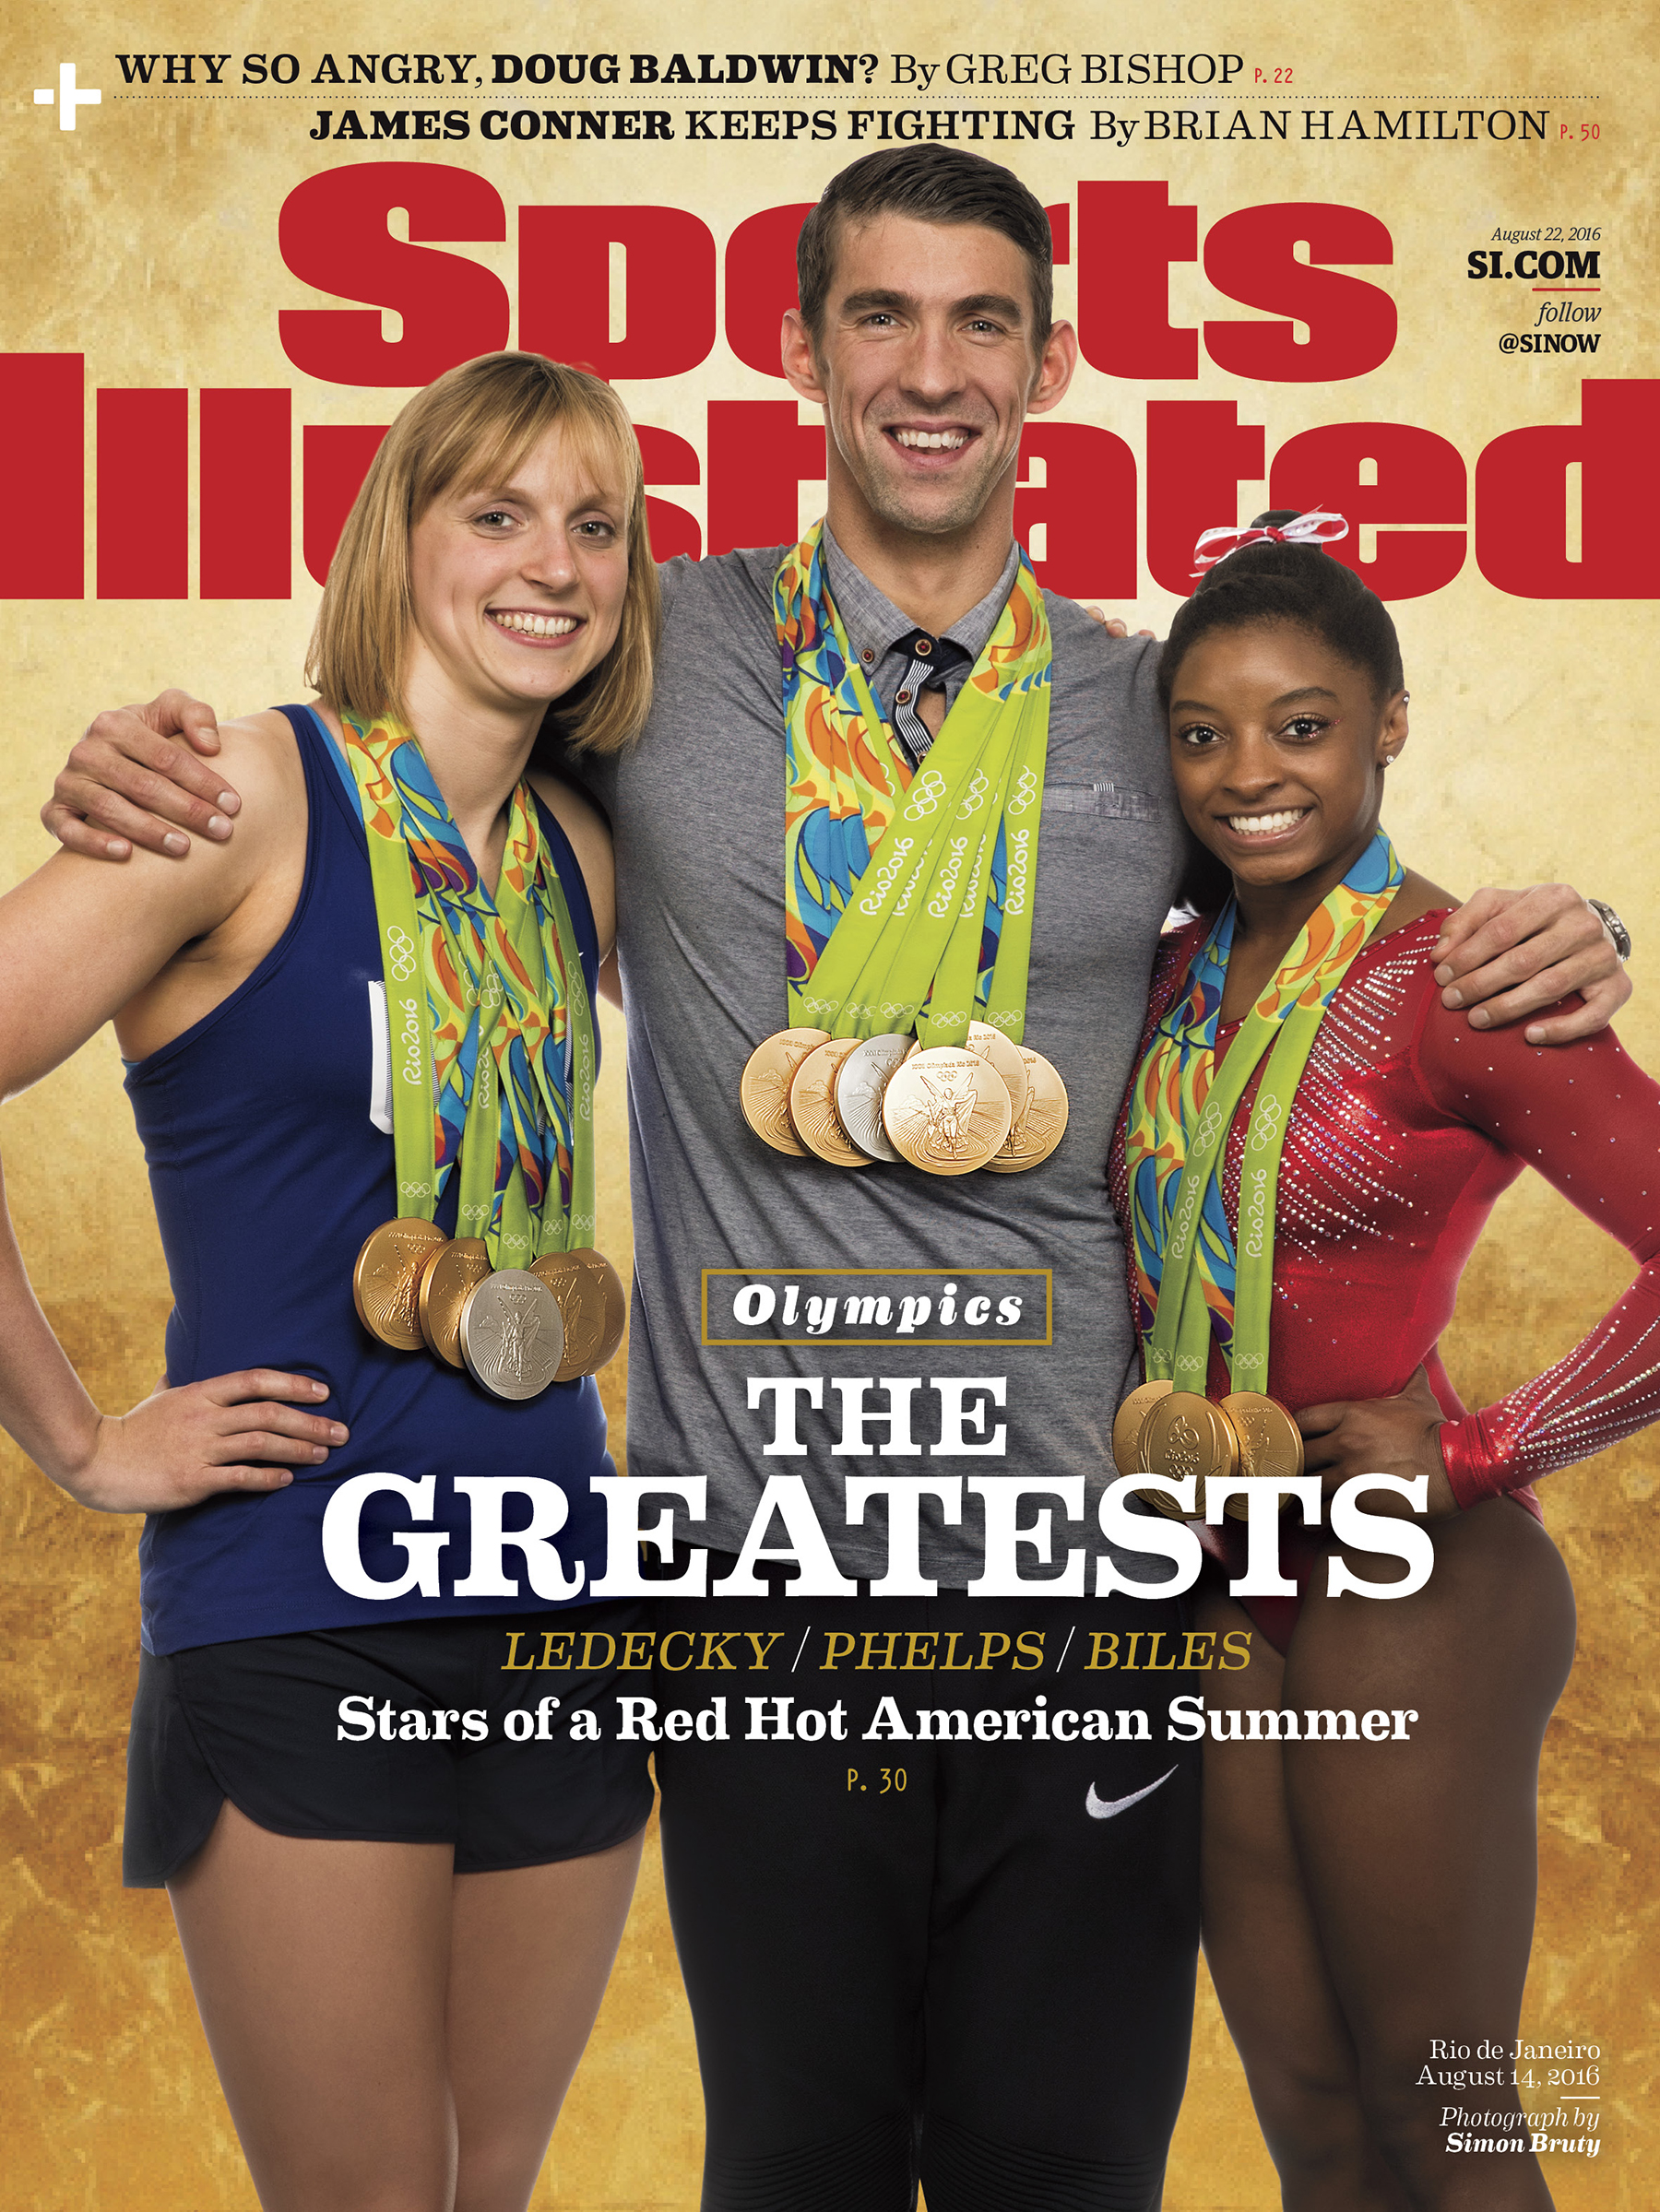 Michael Phelps, Katie Ledecky and Simone Biles took time out to pose together for a very special Sports Illustrated cover